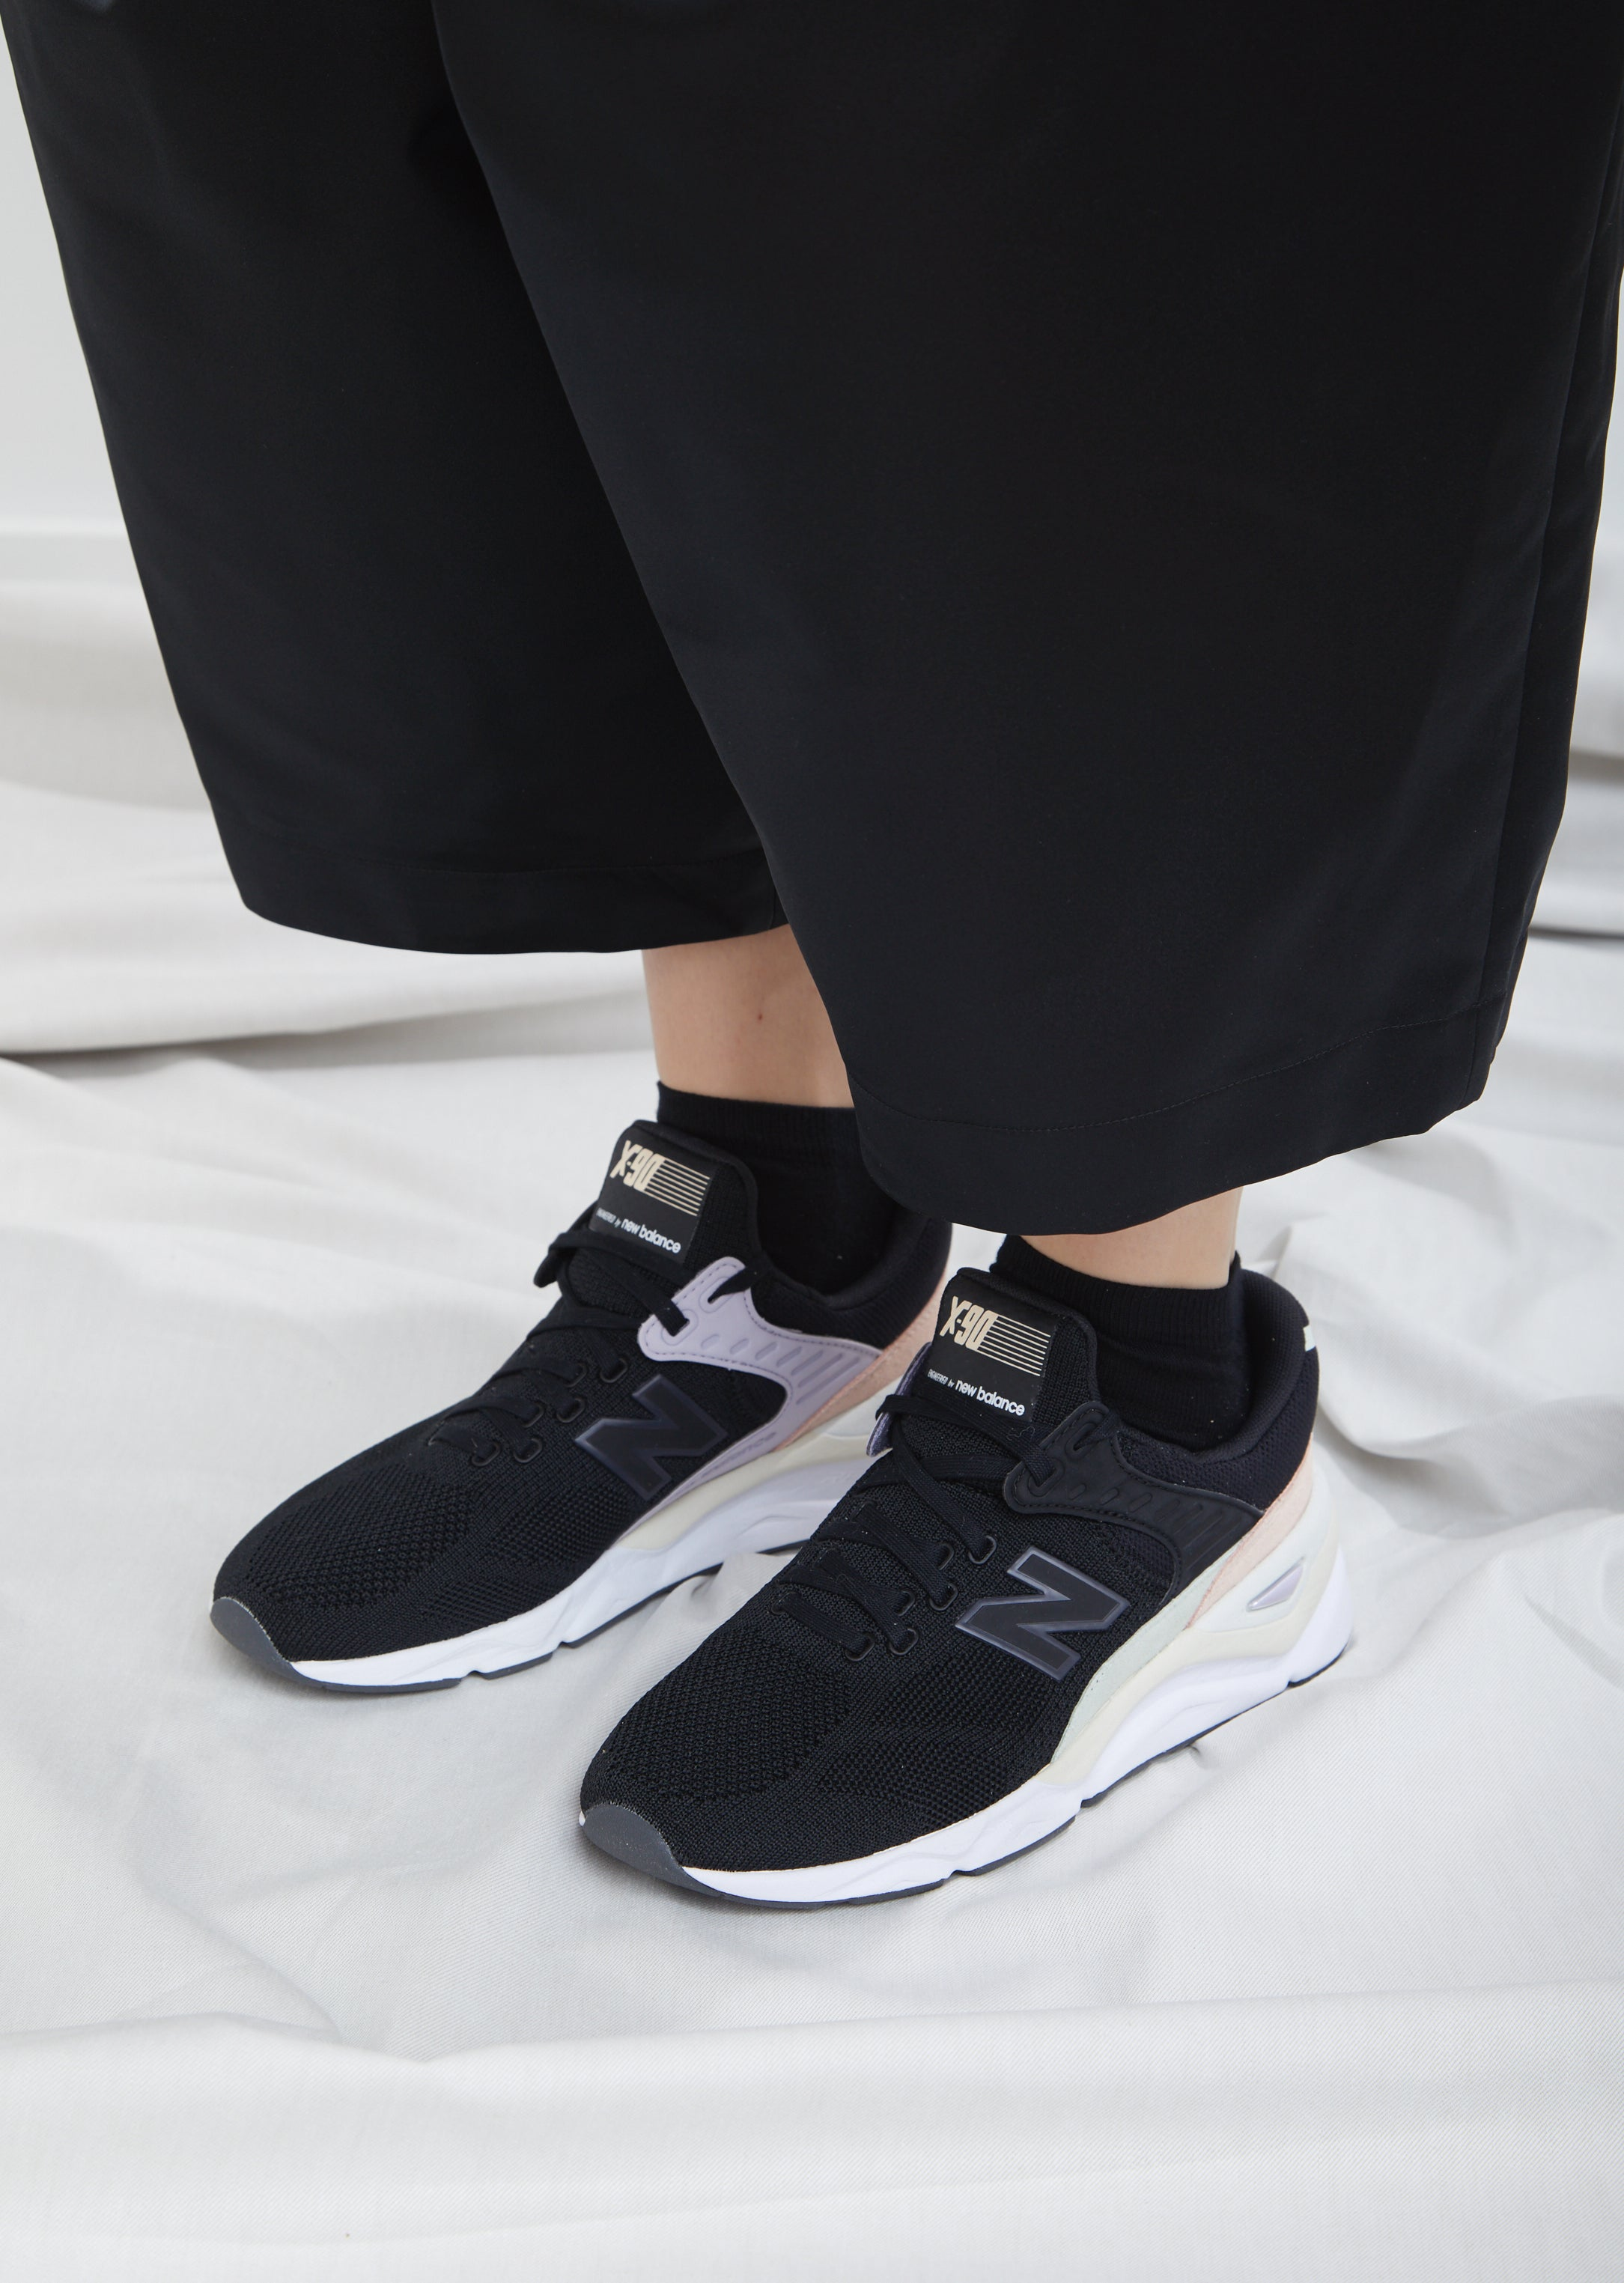 X90 Engineered Knit Sneaker by New Balance- La Garçonne 186e7422d55